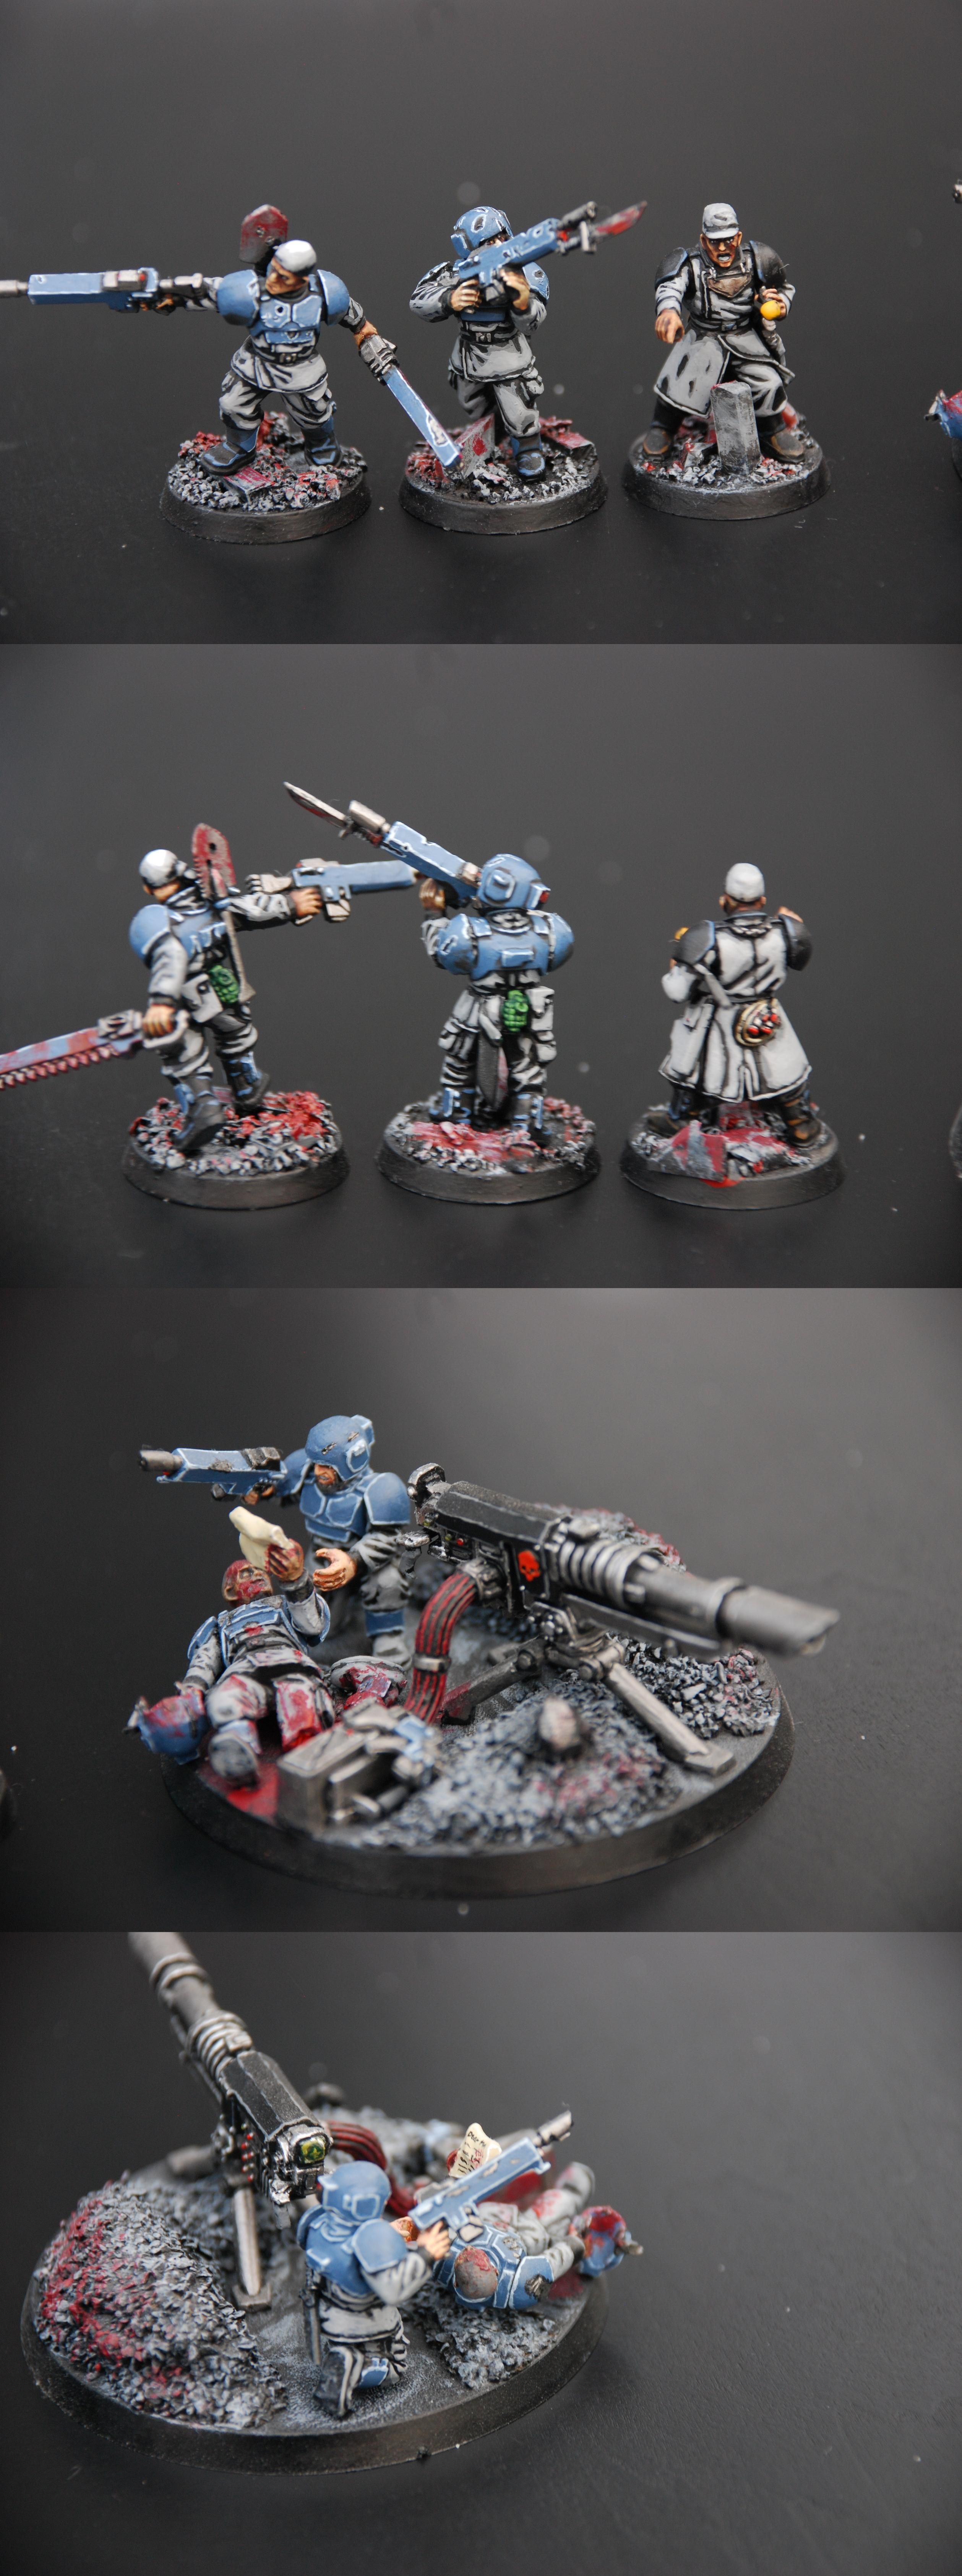 Command Squad, Guardsmen, Imperial Guard, Infantry, Lascannon, Troops, Warhammer 40,000, Wounded